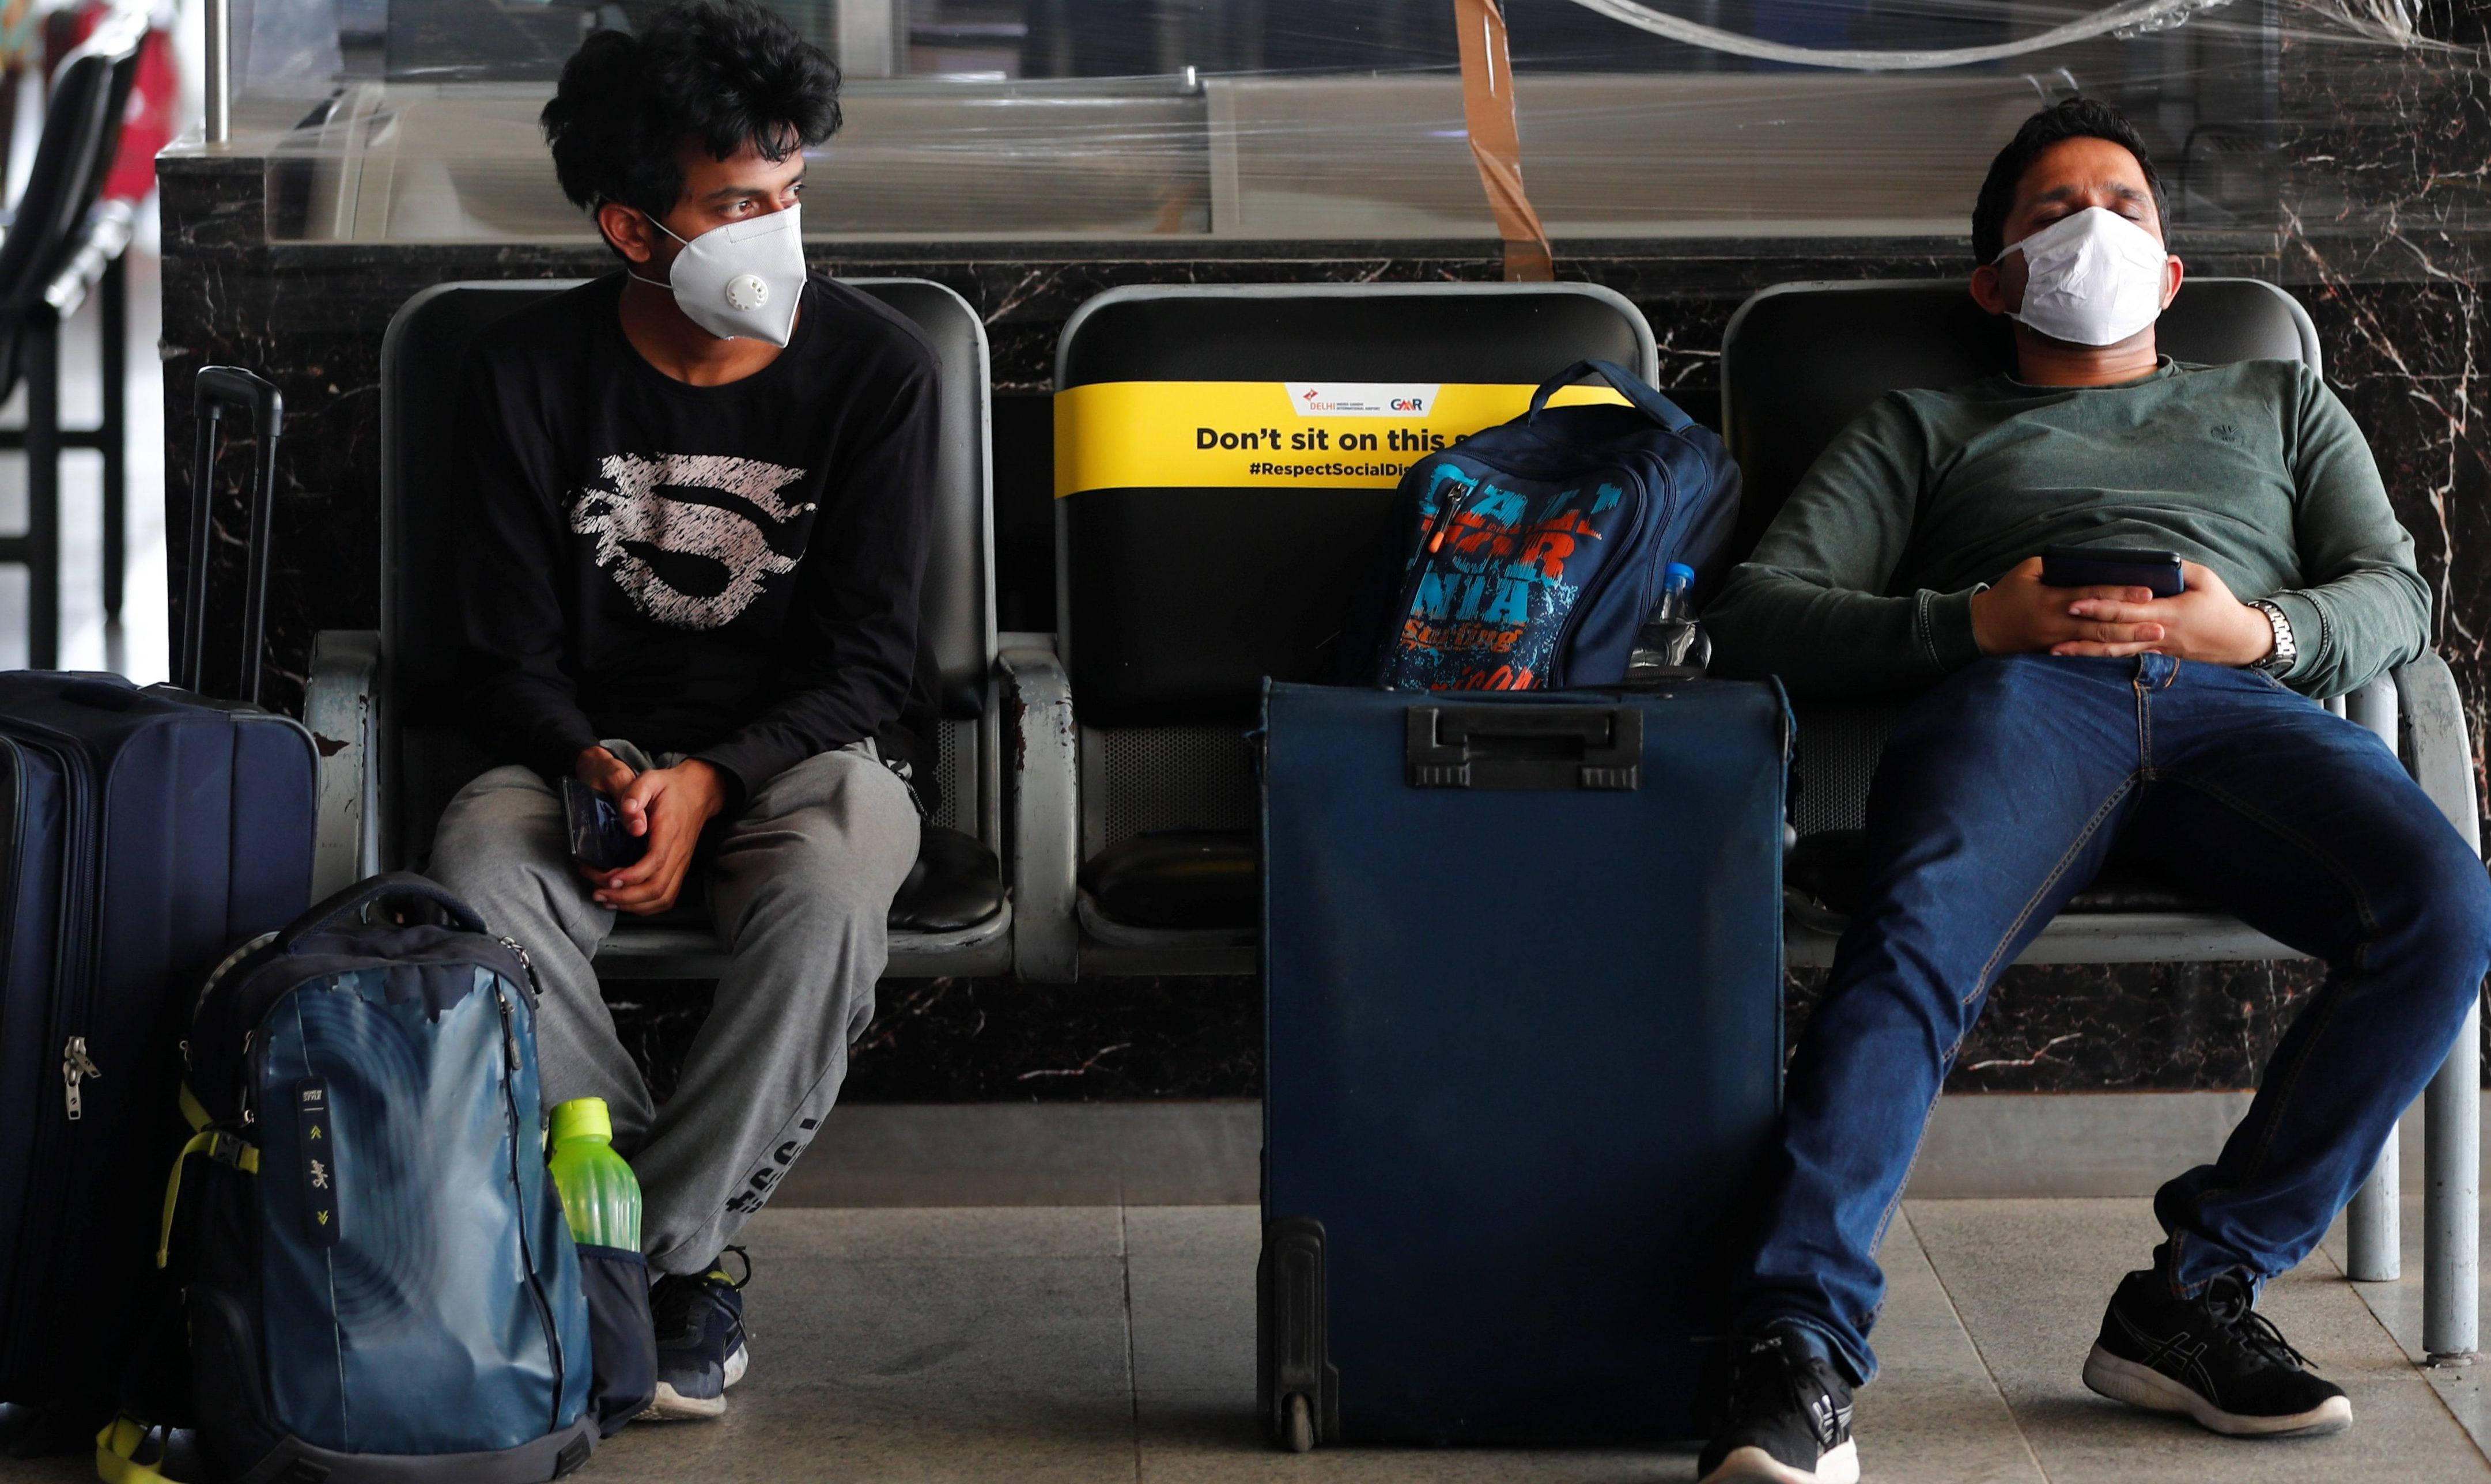 Air travel in India is risky during the pandemic, but it's still the safest